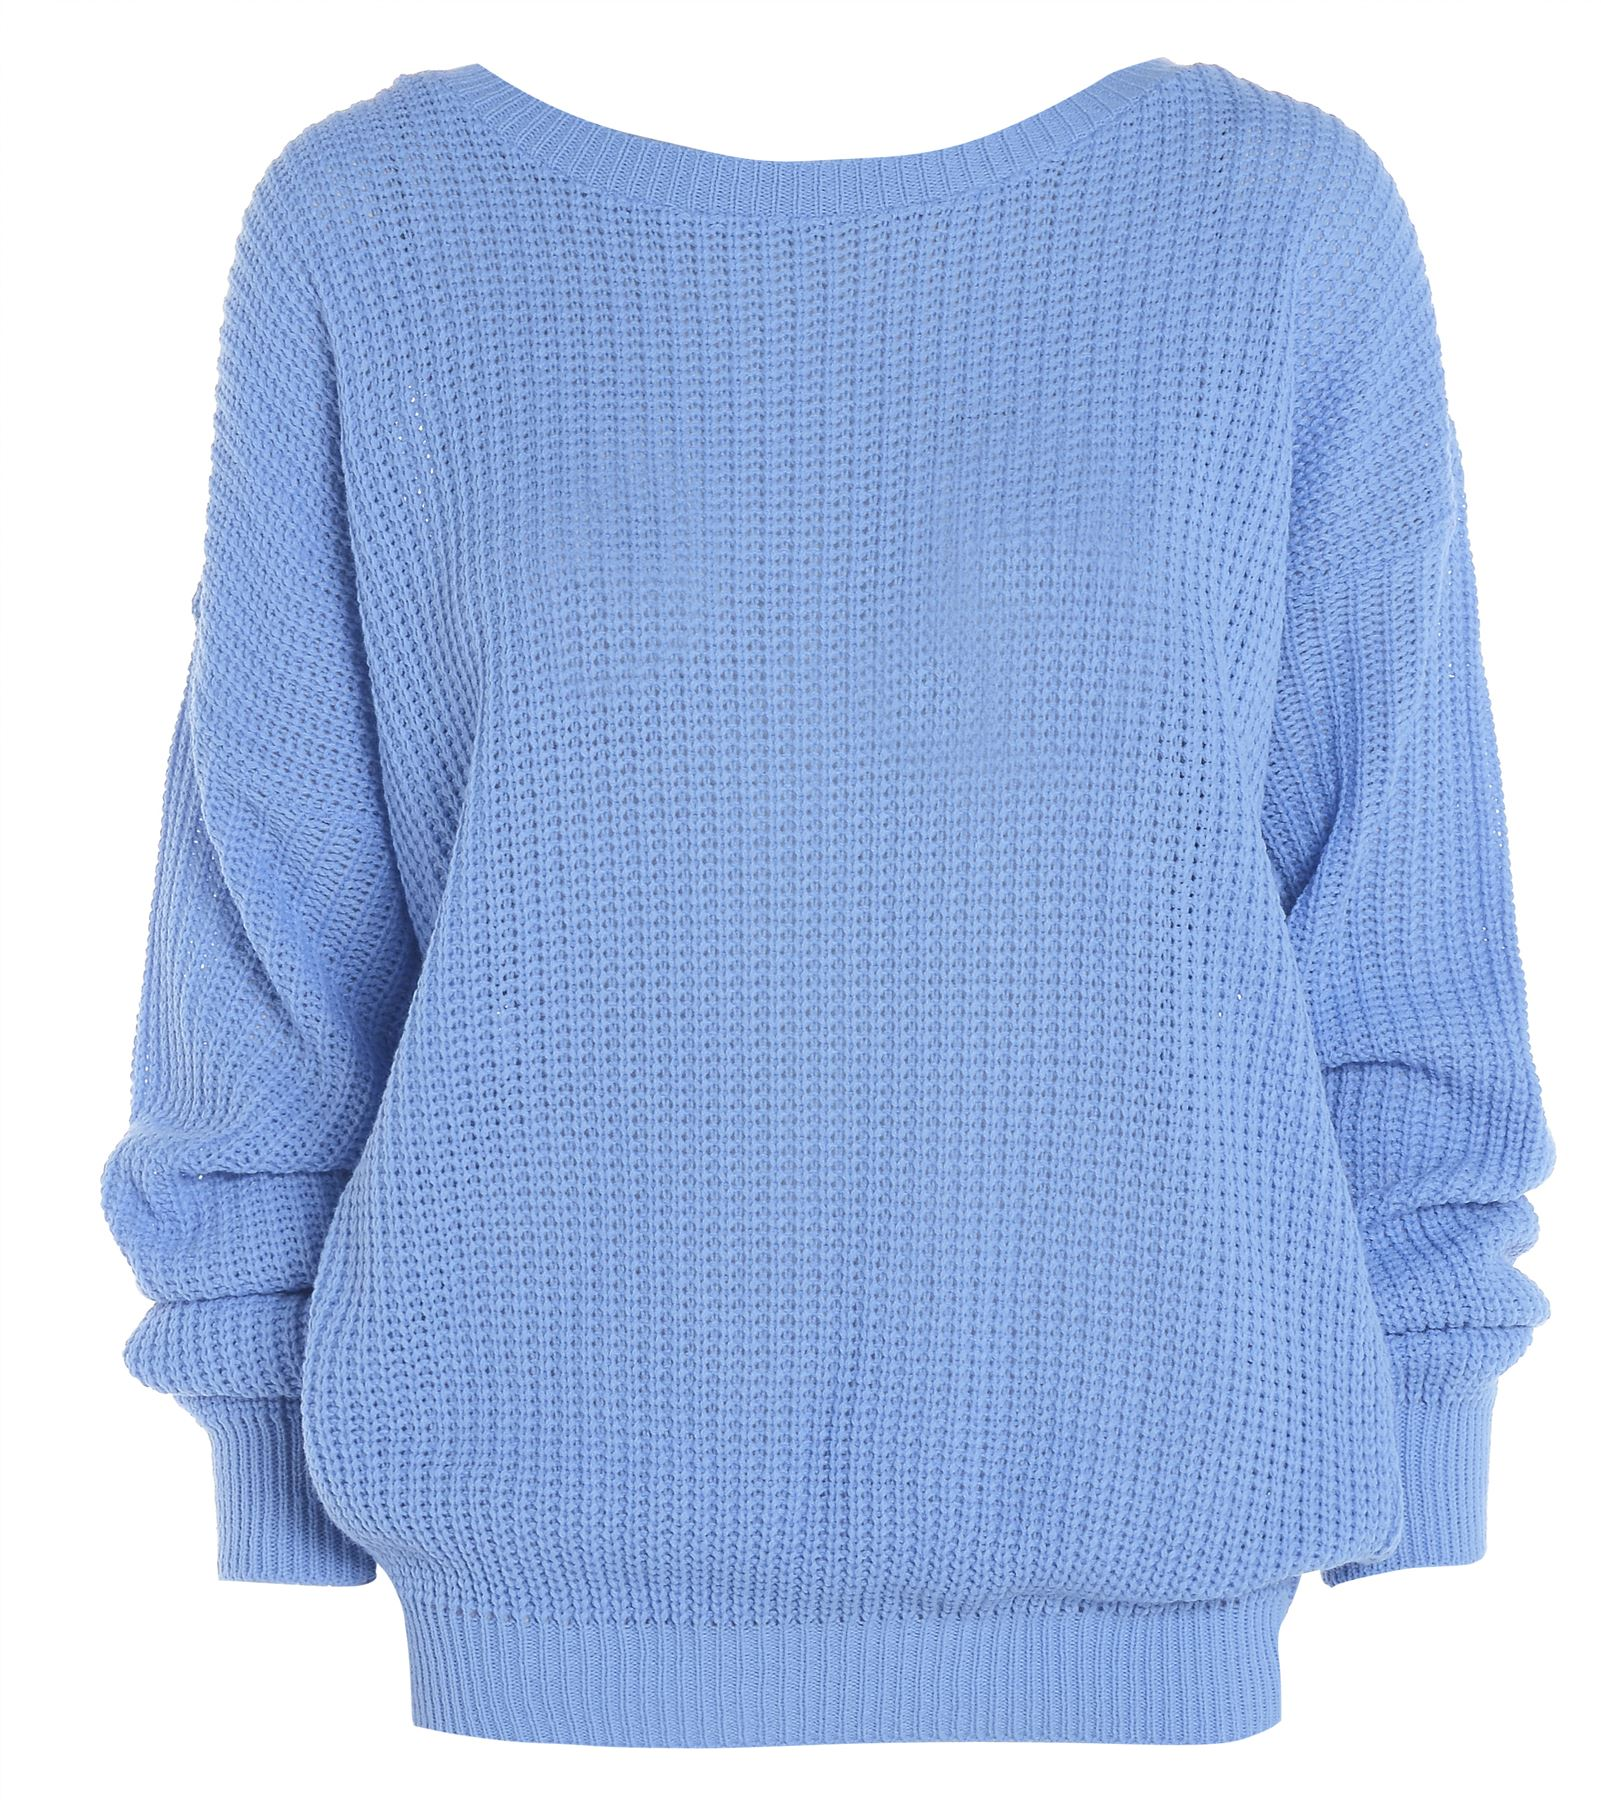 Womens-Ladies-PLAIN-COLOUR-BAGGY-JUMPER-Chunky-Sweater-Knitted-Casual-TOP